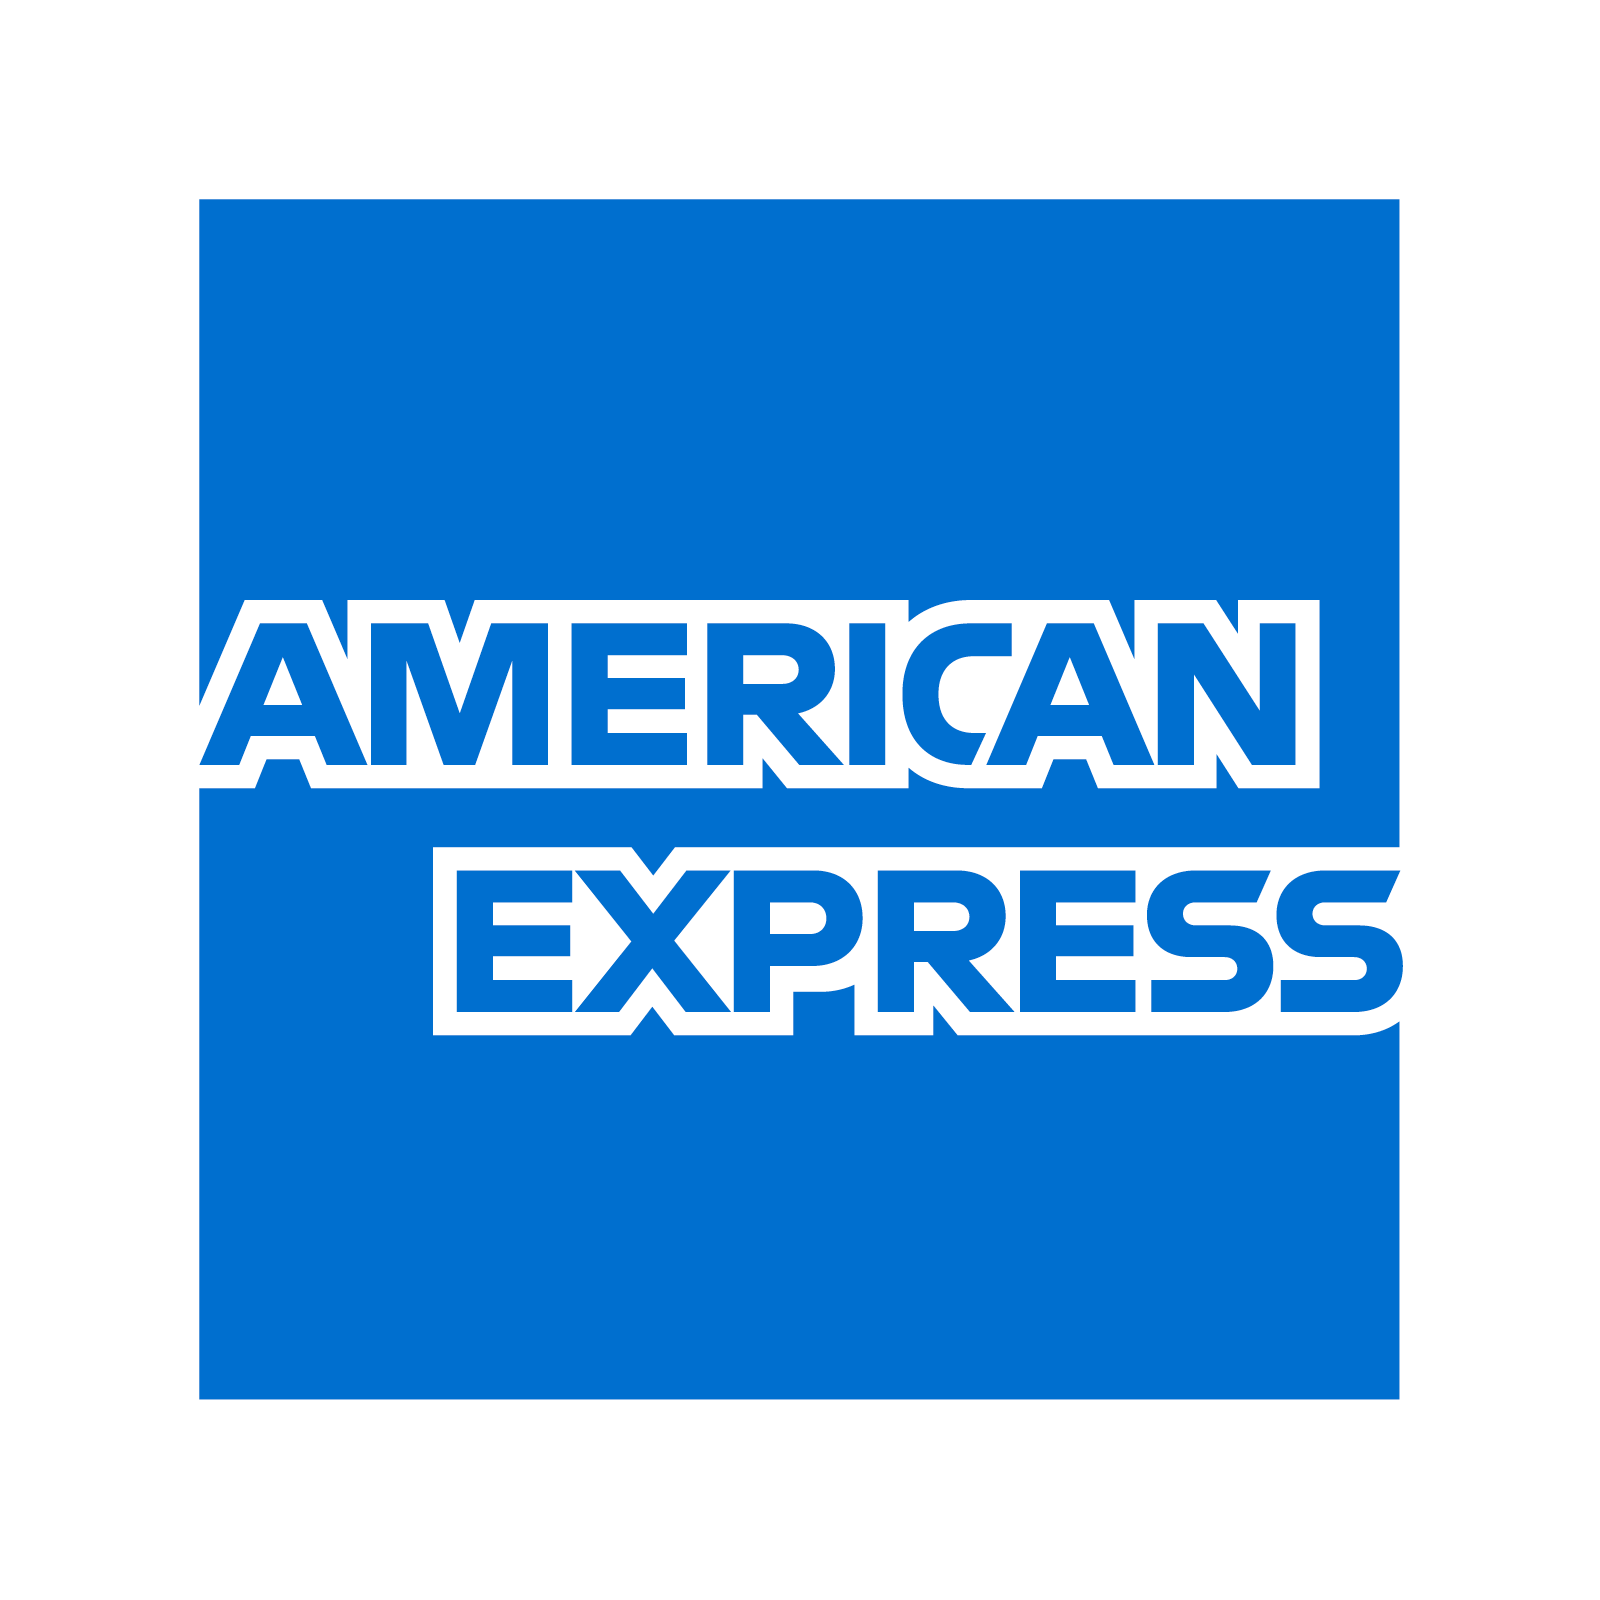 After Chase, Amex card approvals could get tougher - TravelUpdate